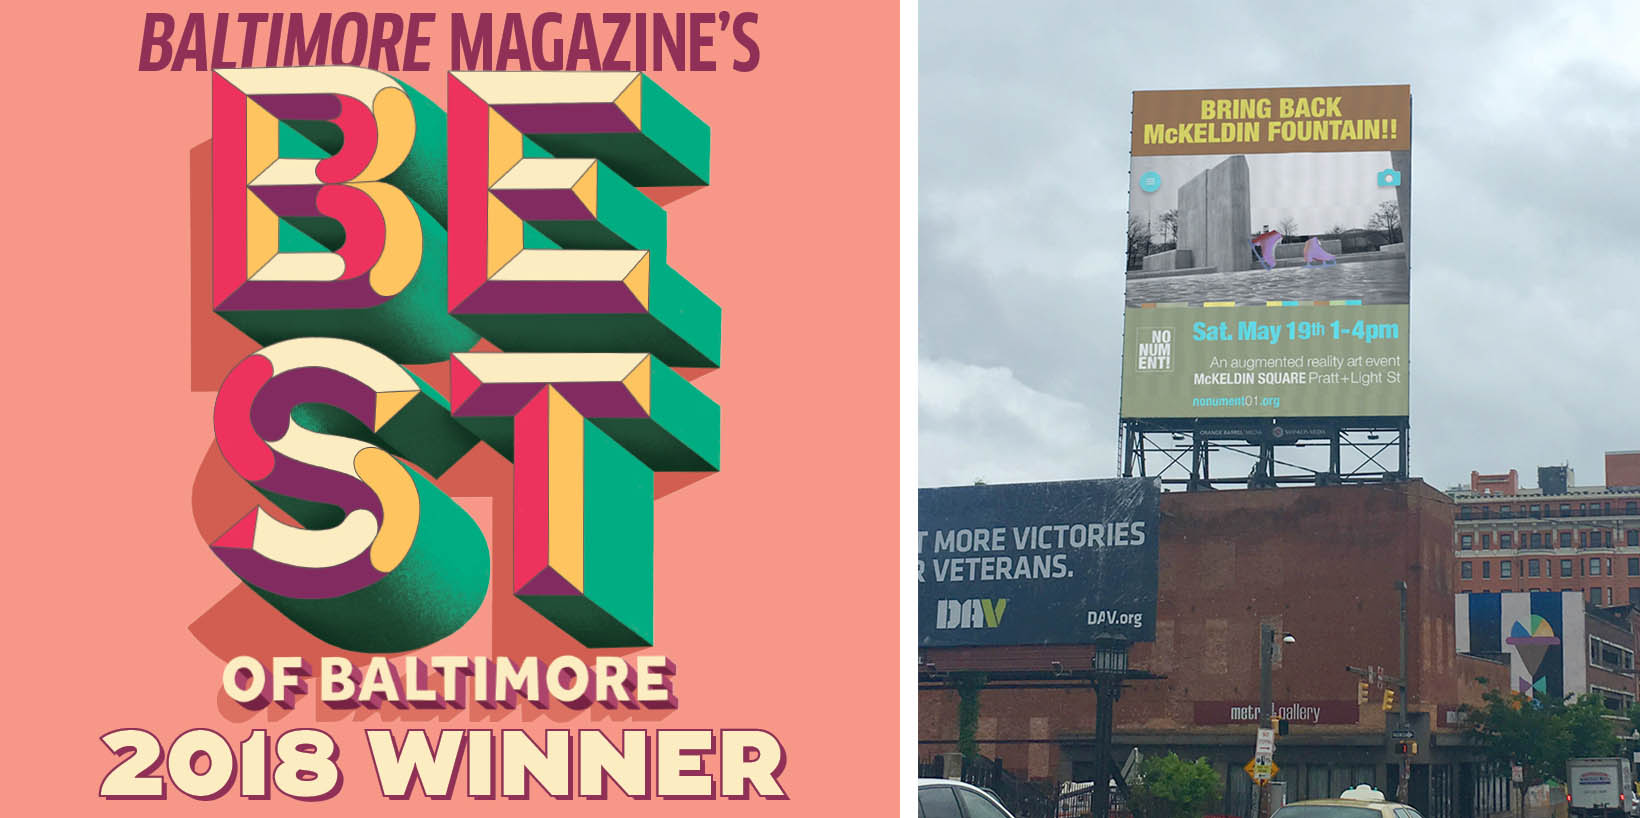 """Left: Baltimore Magazine awards NONUMENT 01 """"Best Virtual Public Art 2018."""" Right: Metro Gallery Billboard, Station North Neighborhood, Baltimore, May 12-19 2018. Image courtesy of the artist."""